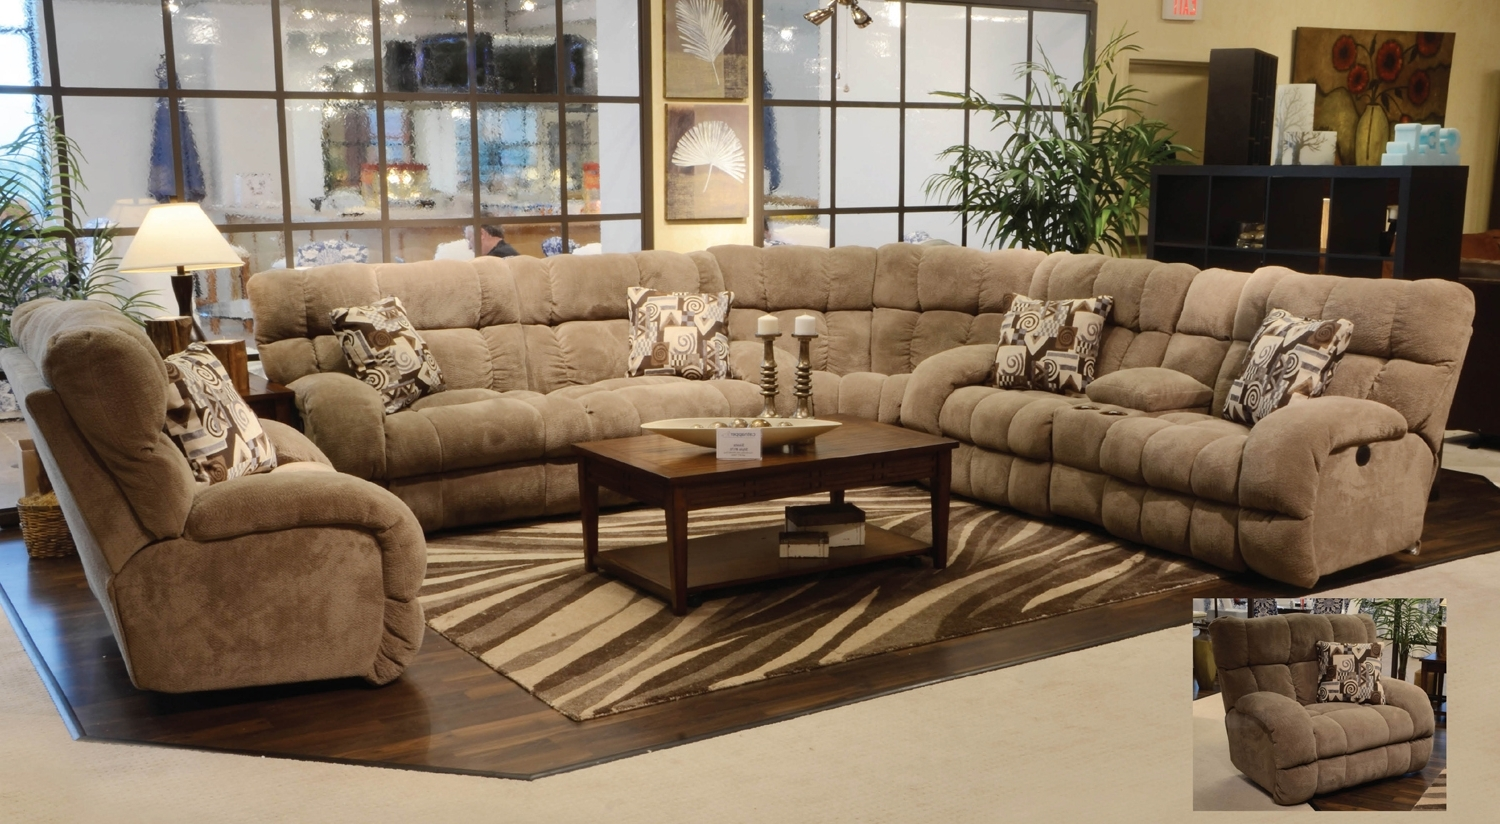 Furniture : Sectional Sofa 110 X 110 Corner Couch Ideas Sectional For Well Known 110X110 Sectional Sofas (View 9 of 15)